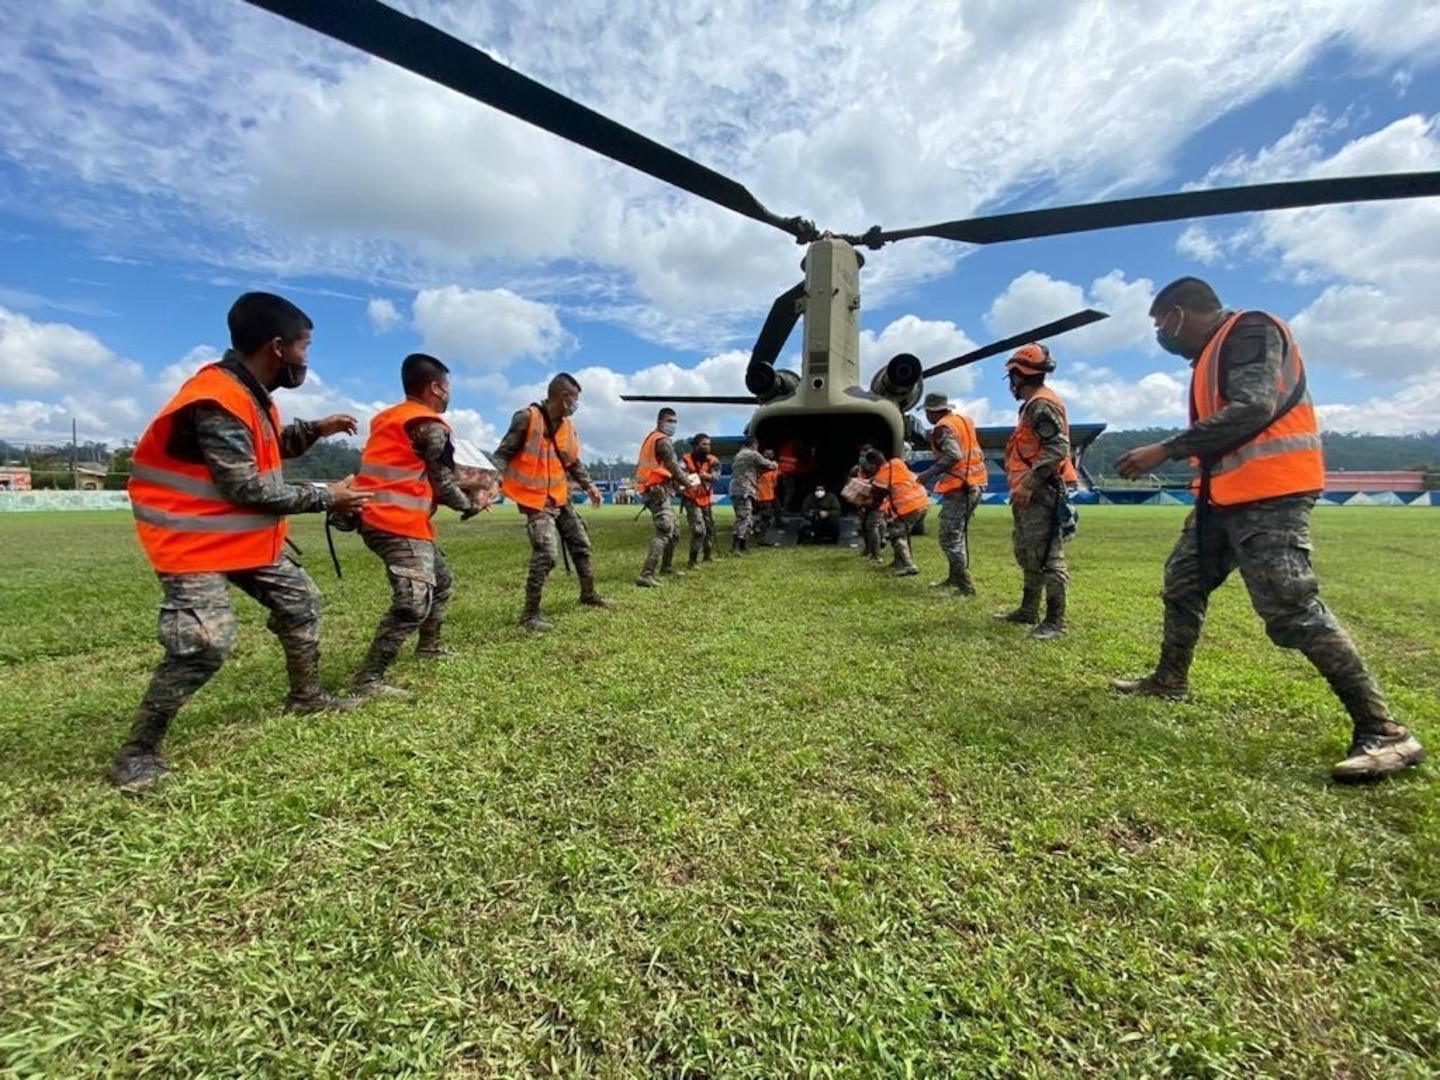 Joint Task Force-Bravo unloads emergency supplies from a U.S. Army CH-47 Chinook